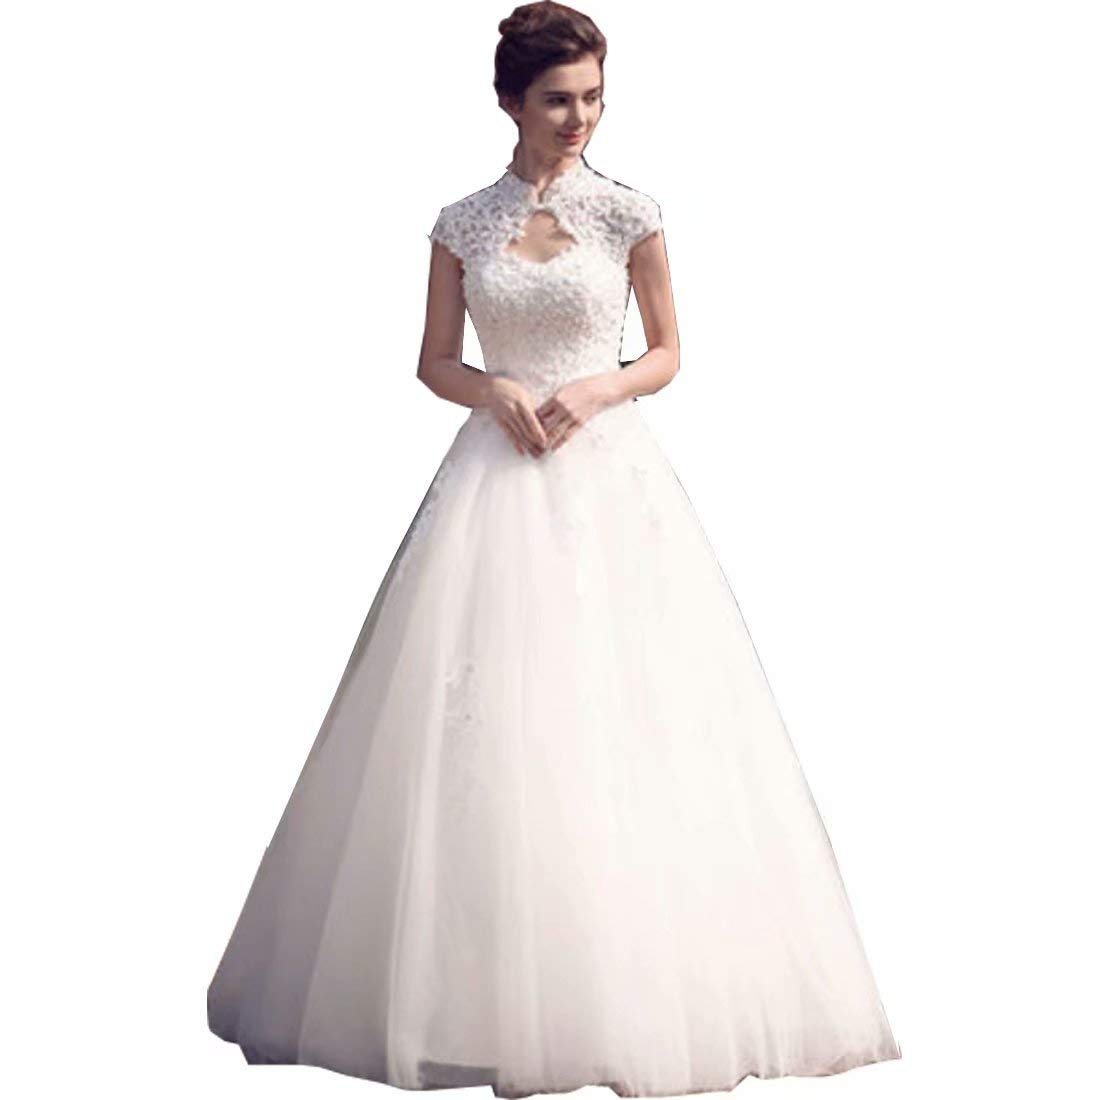 Chady Lace High Neck Beading Wedding Dresses 2019 Cap Sleeves Open Back Ball Gown At Amazon Women's Clothing Store: High Back Wedding Dress At Reisefeber.org